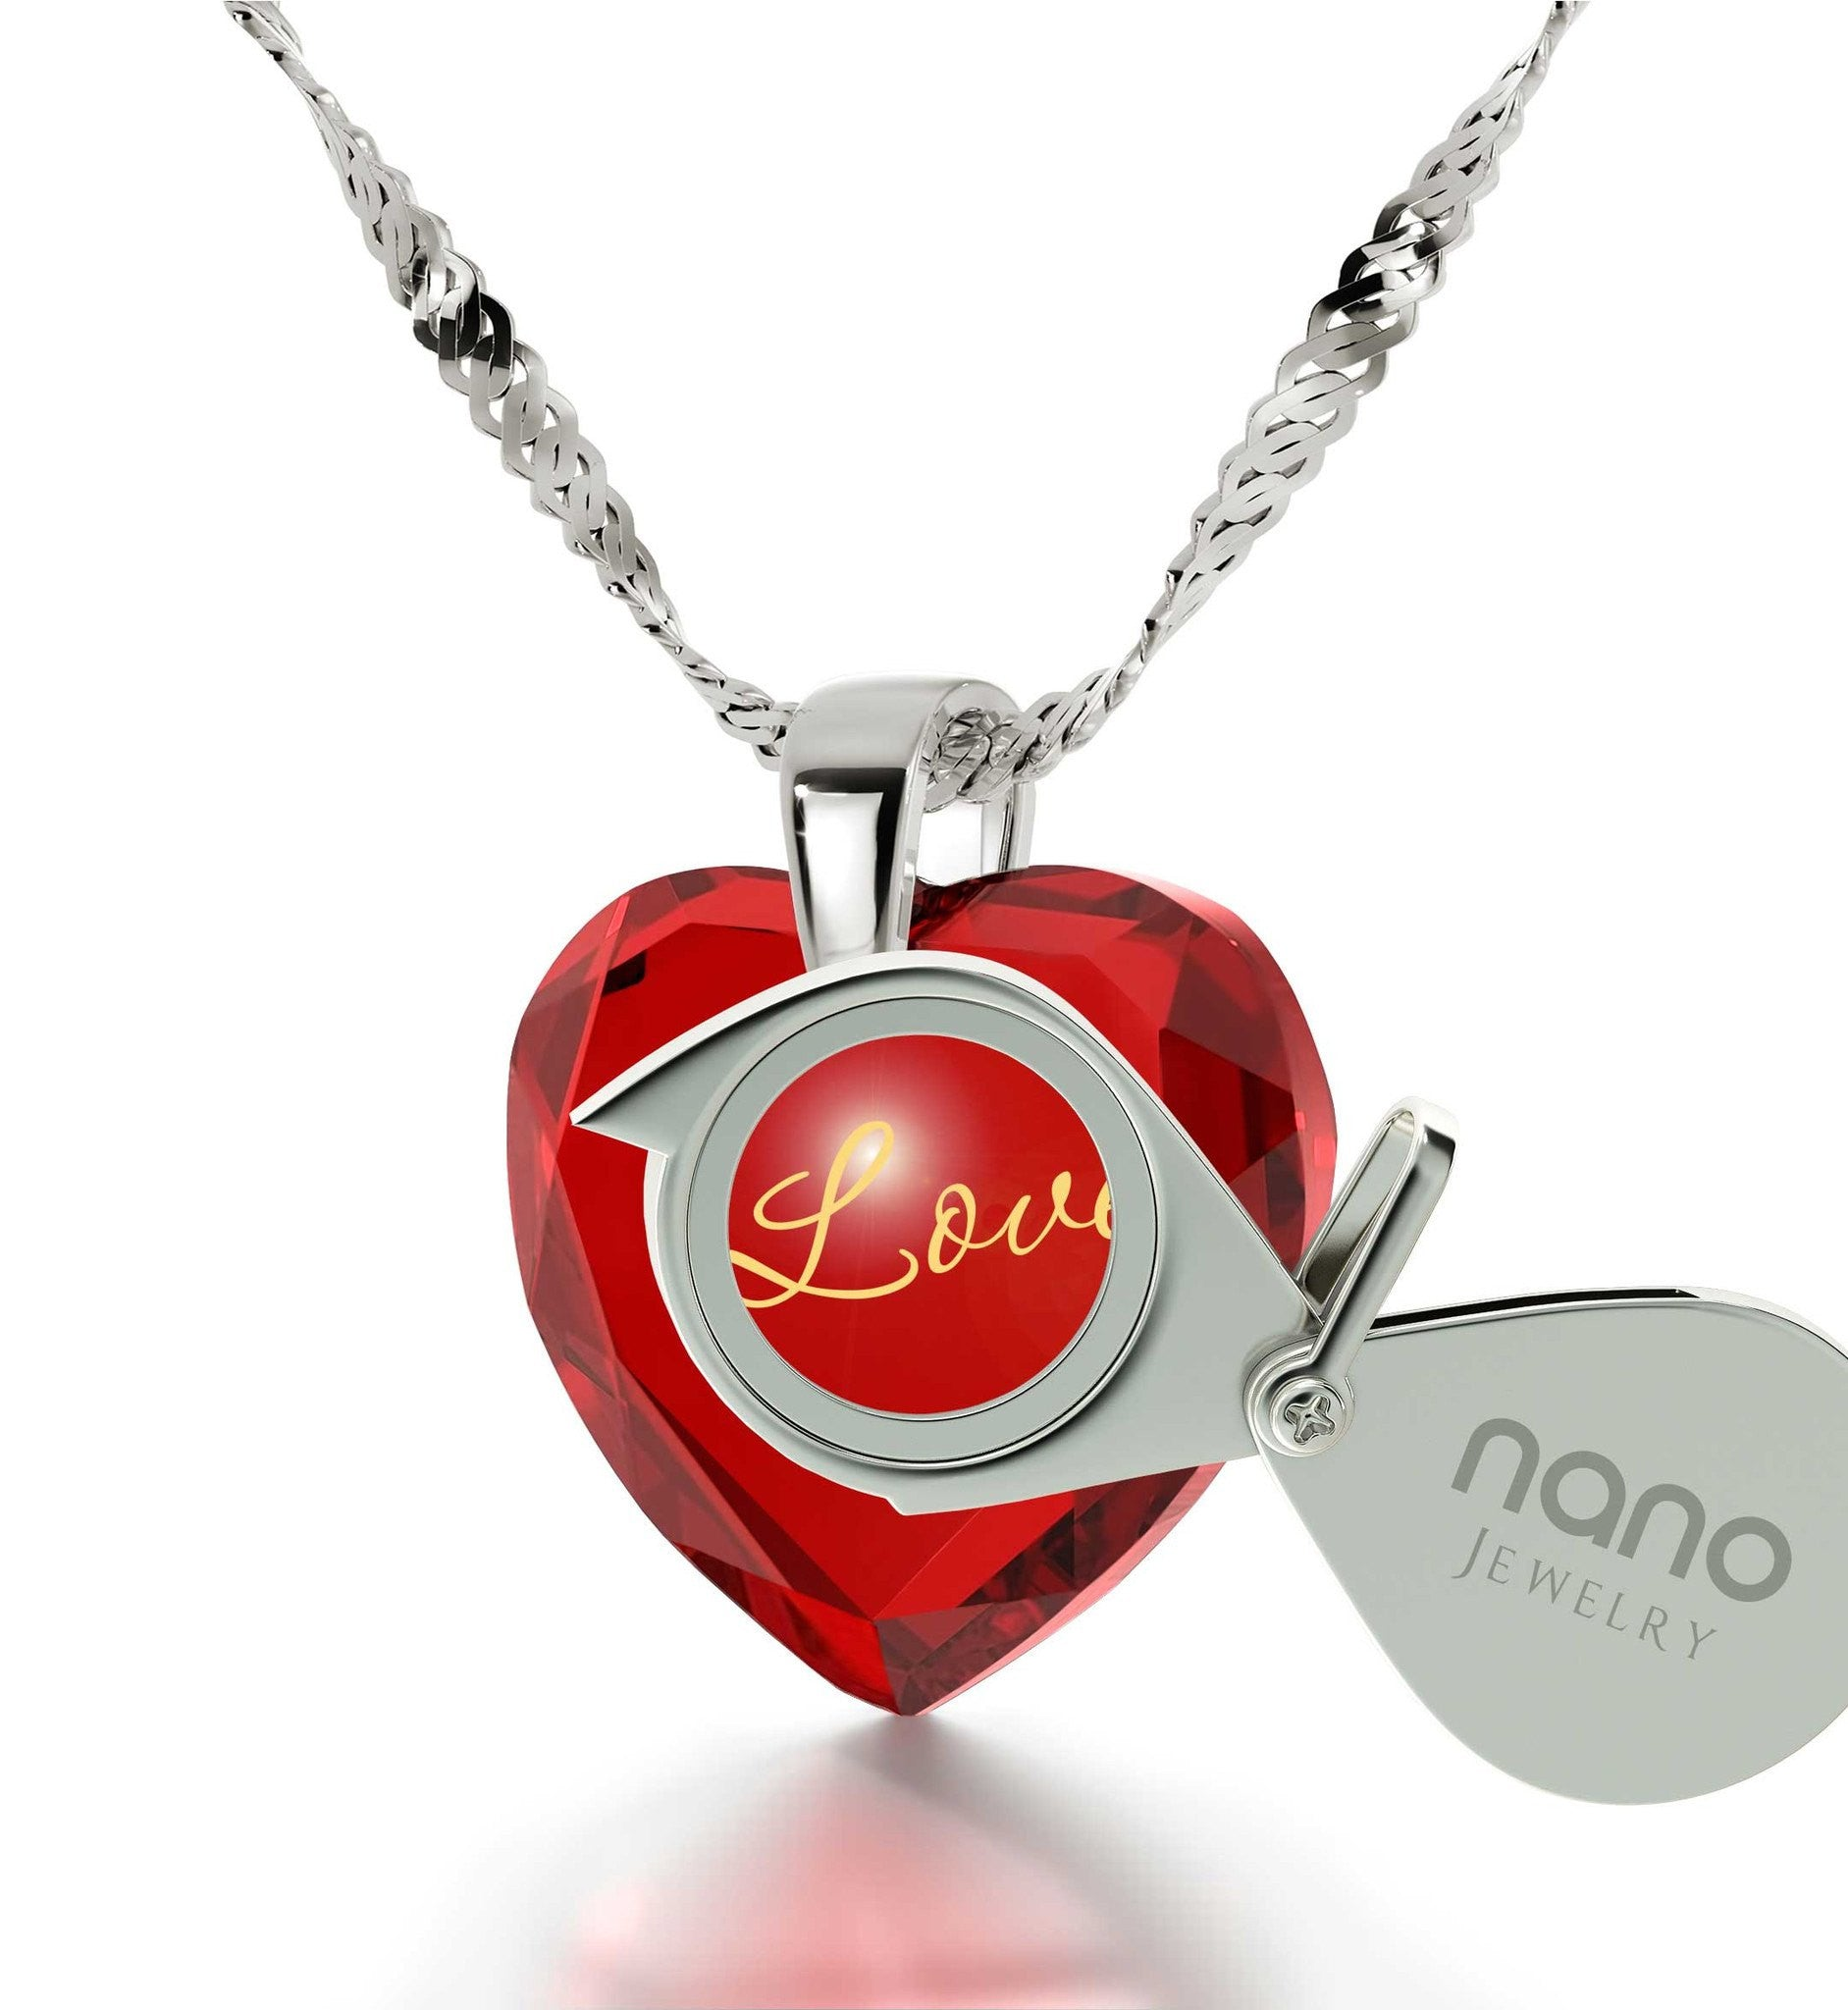 What to Get Girlfriend for Christmas, Meaningful Heart Stone Necklace, Romantic Ideas for Valentines Day